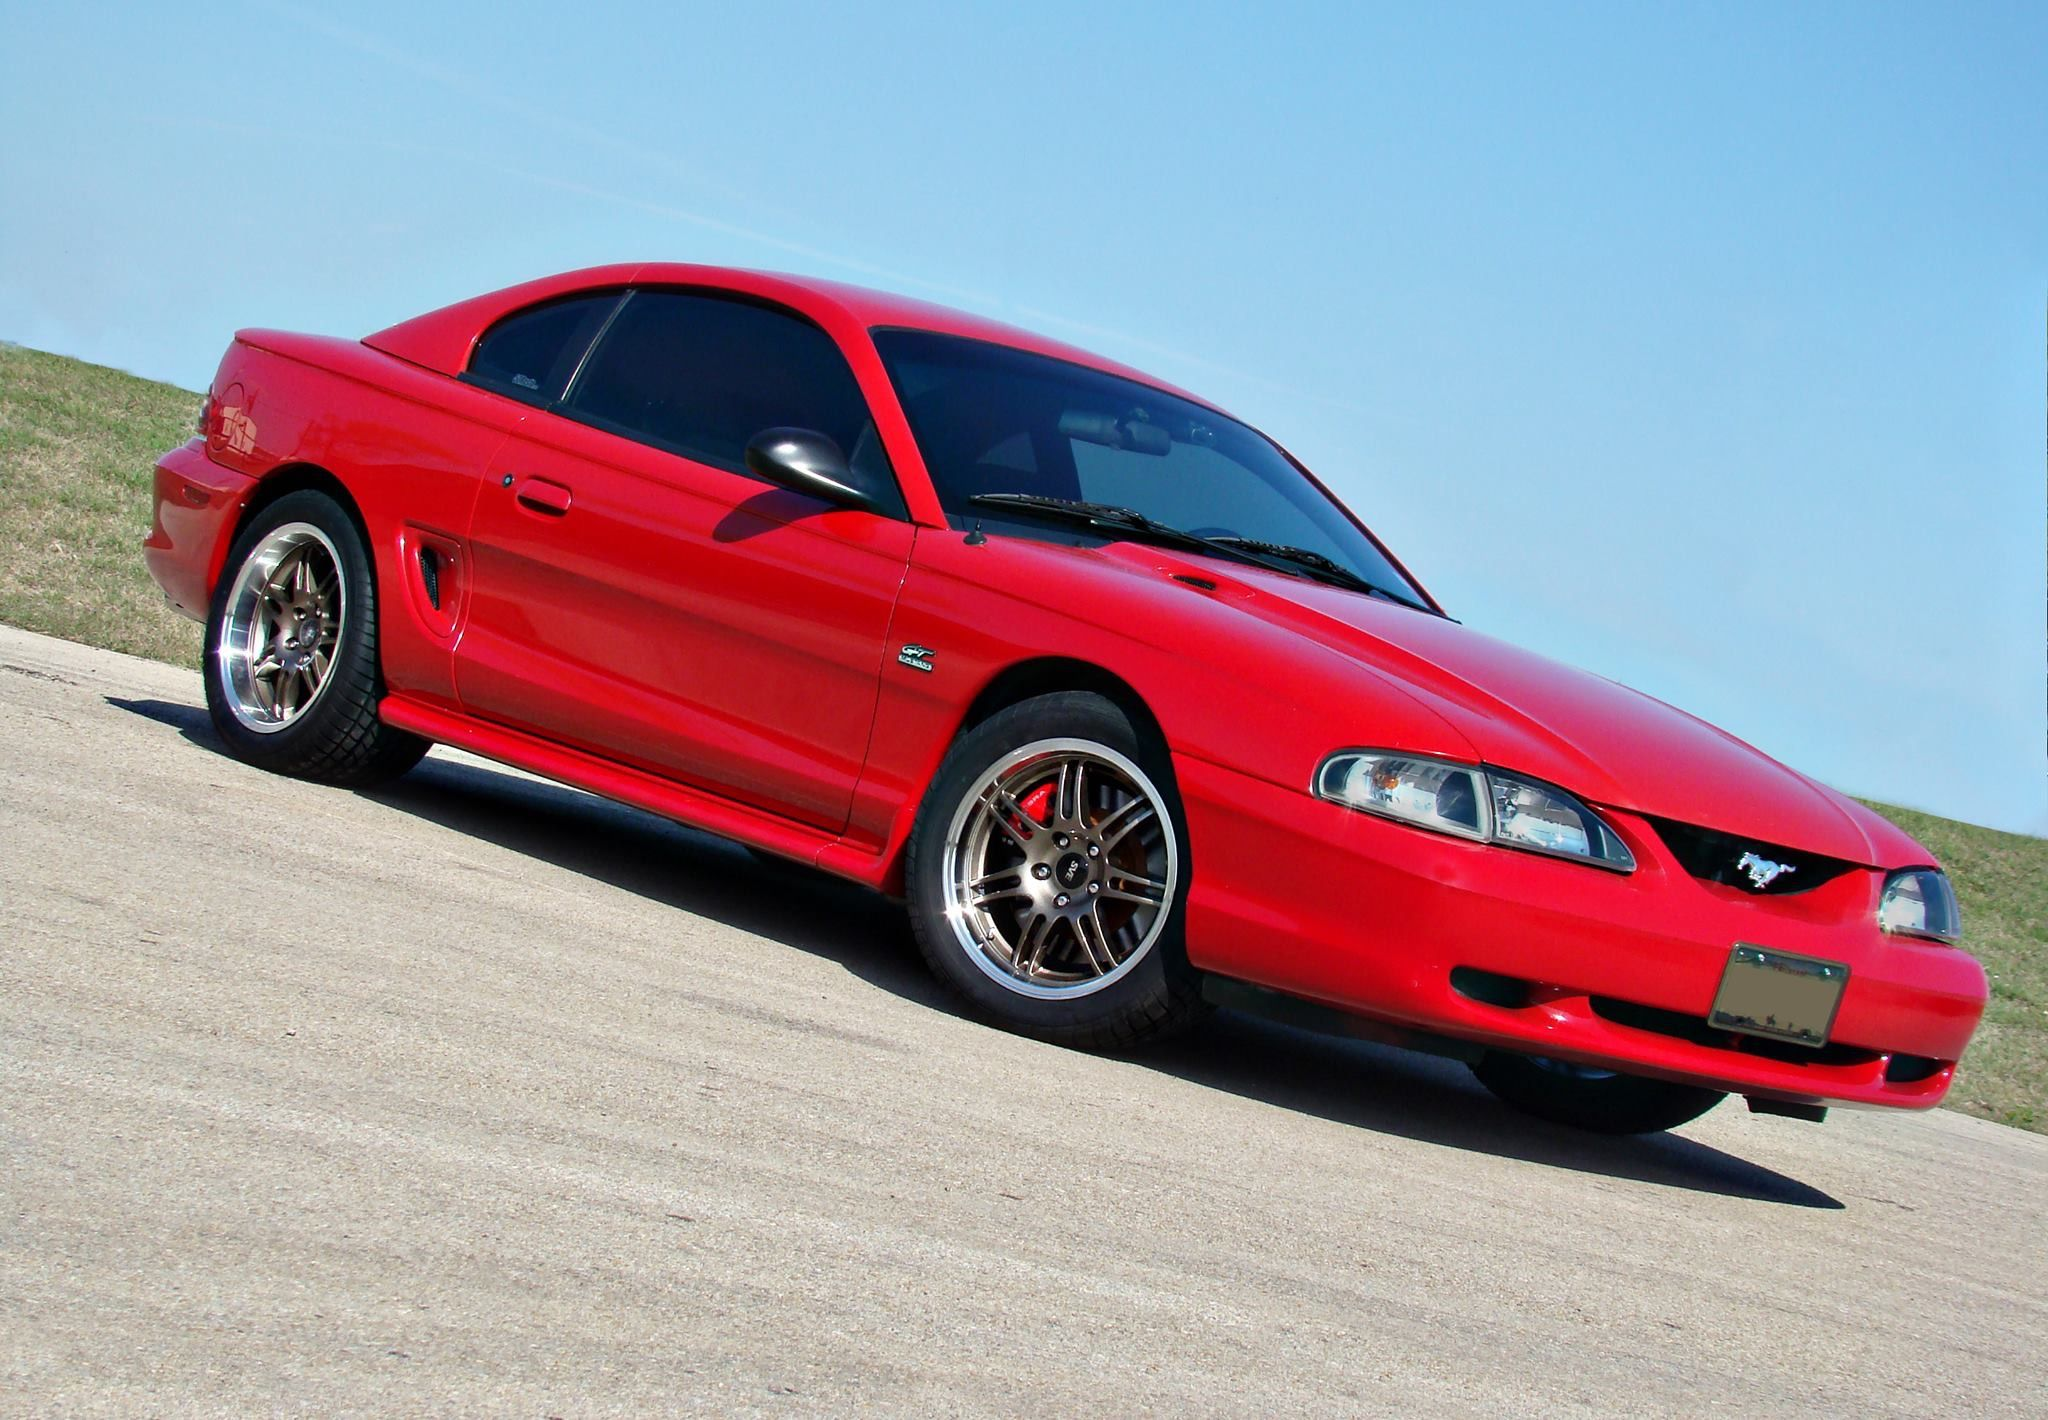 Pin by Ron Clark on Ford: 1994-98 Mustang: SN95   Mustang gt, Ford mustang, Red mustang